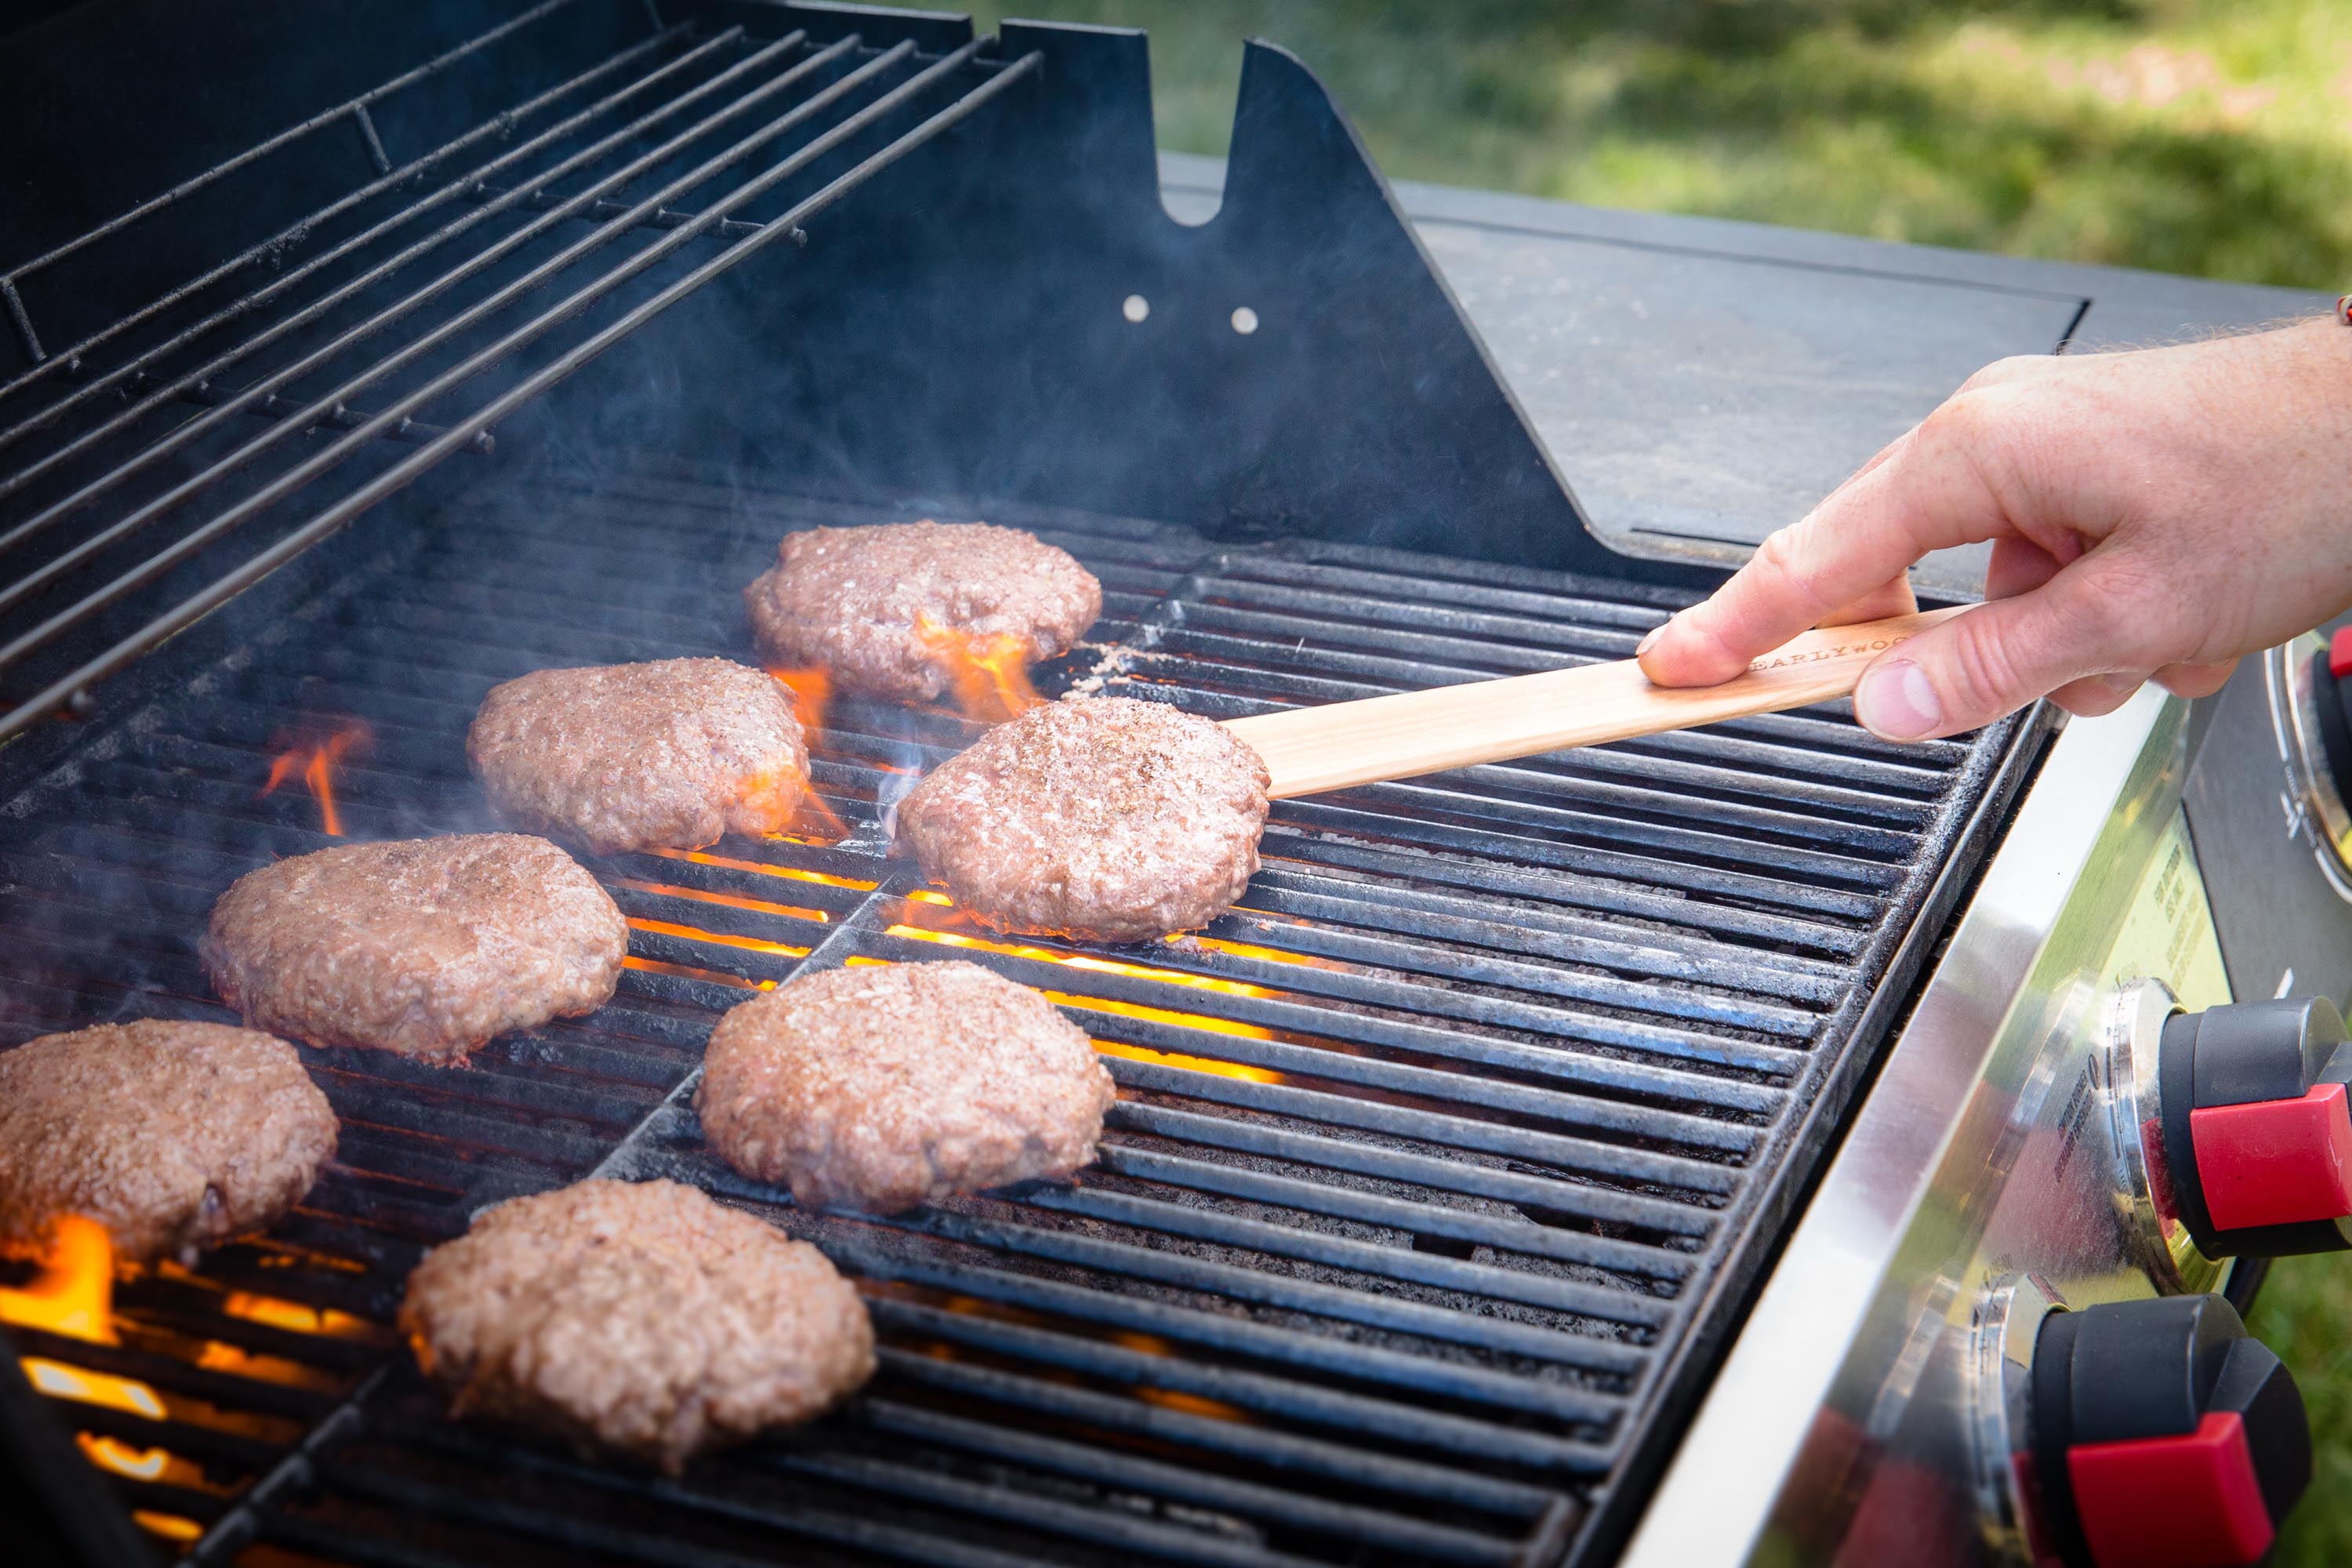 Grilling burgers using Large Flat Wooden Spatula